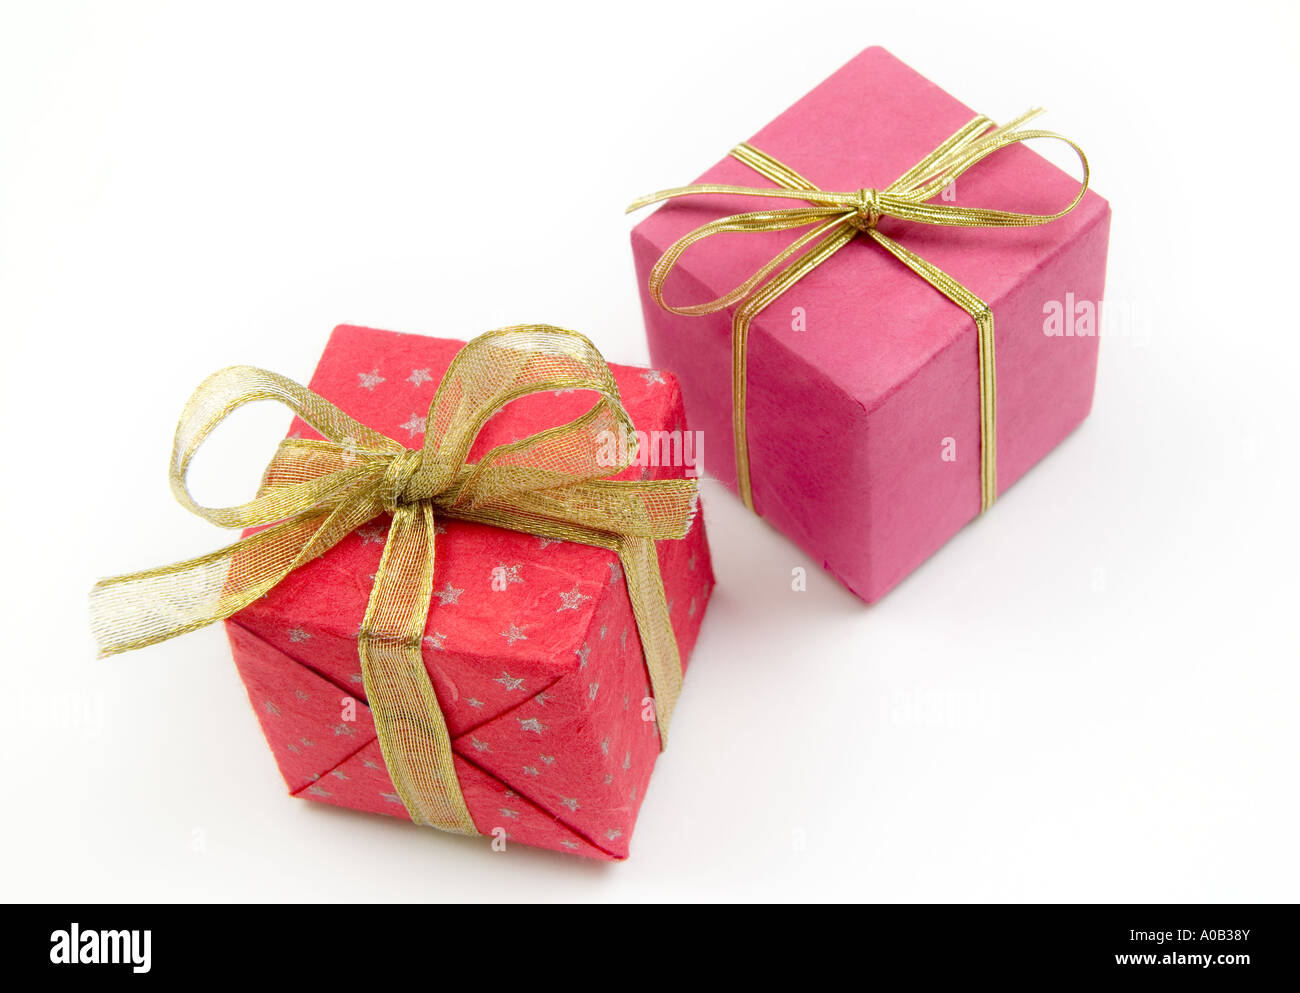 white background; cut out;  parcel; package; present; gift wrapped; bow; gold braid; surprise; wrap; christmas box - Stock Image